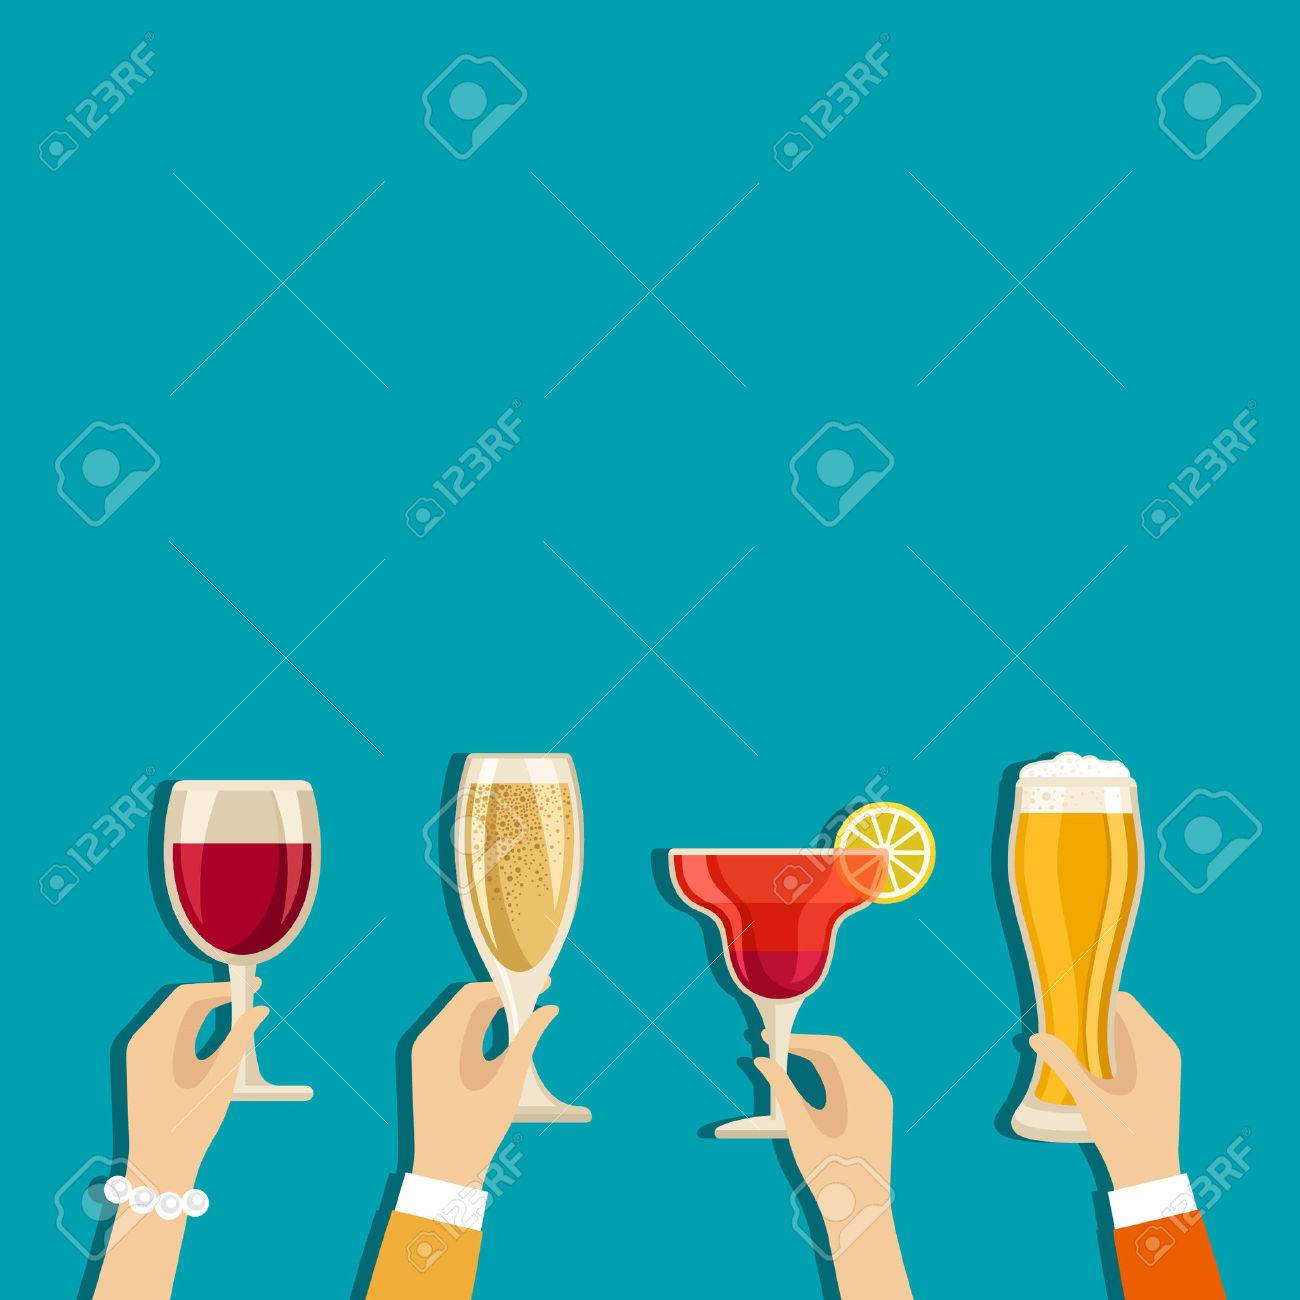 Cheers hands vector poster with place for text - 52359026